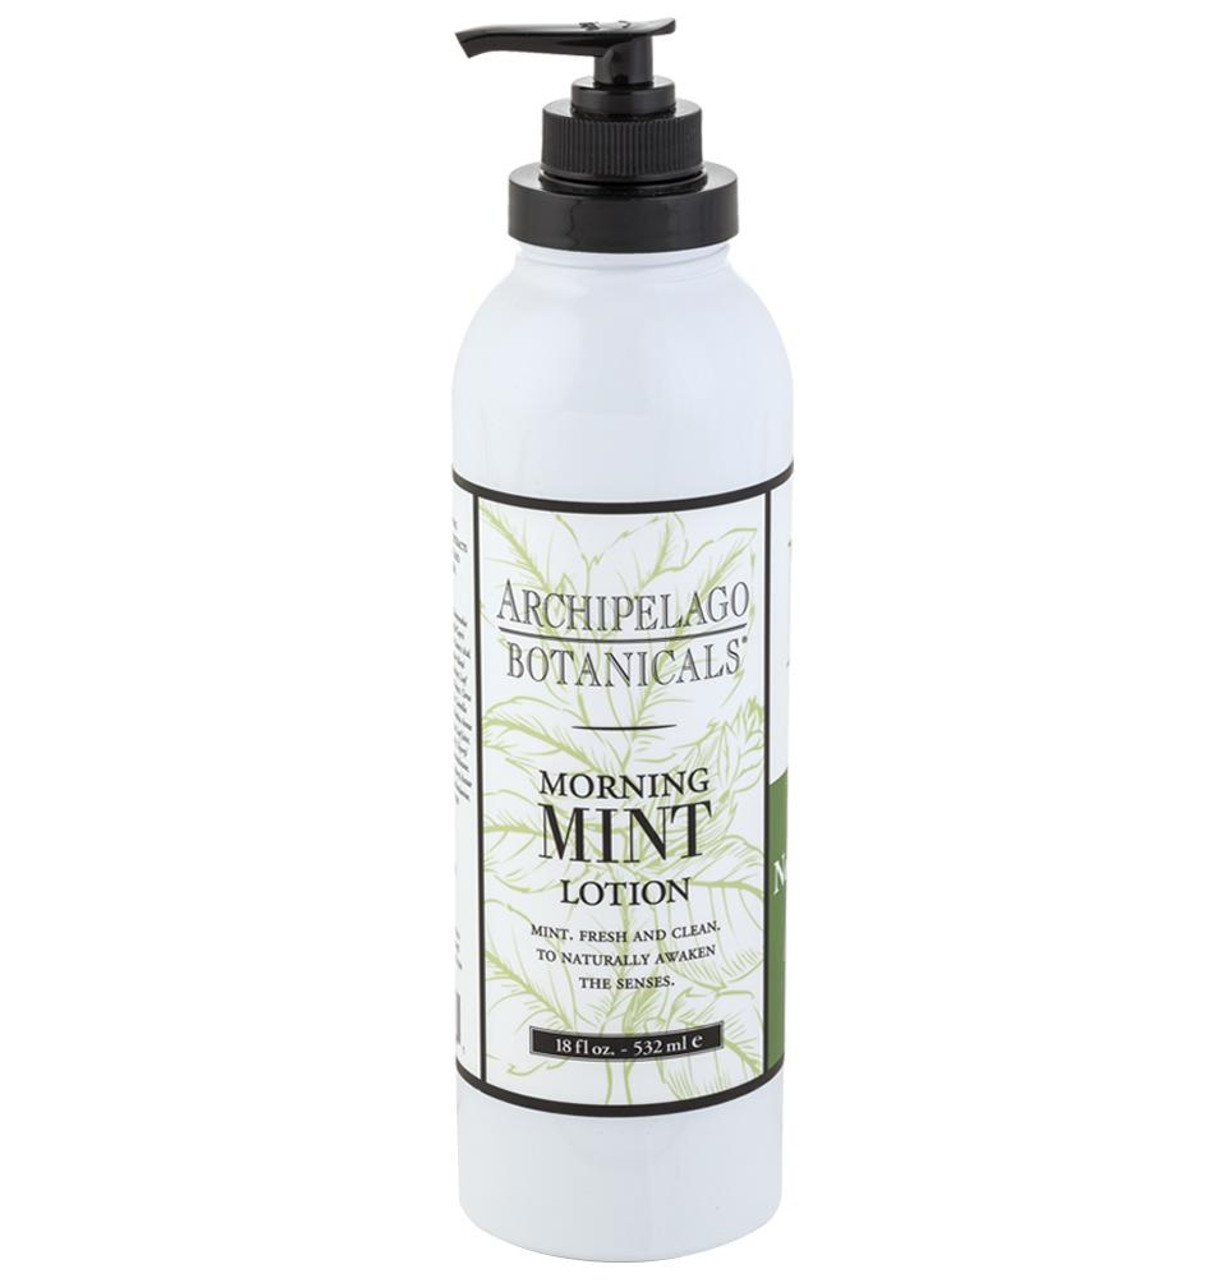 Archipelago Morning Mint Body Lotion 17 oz